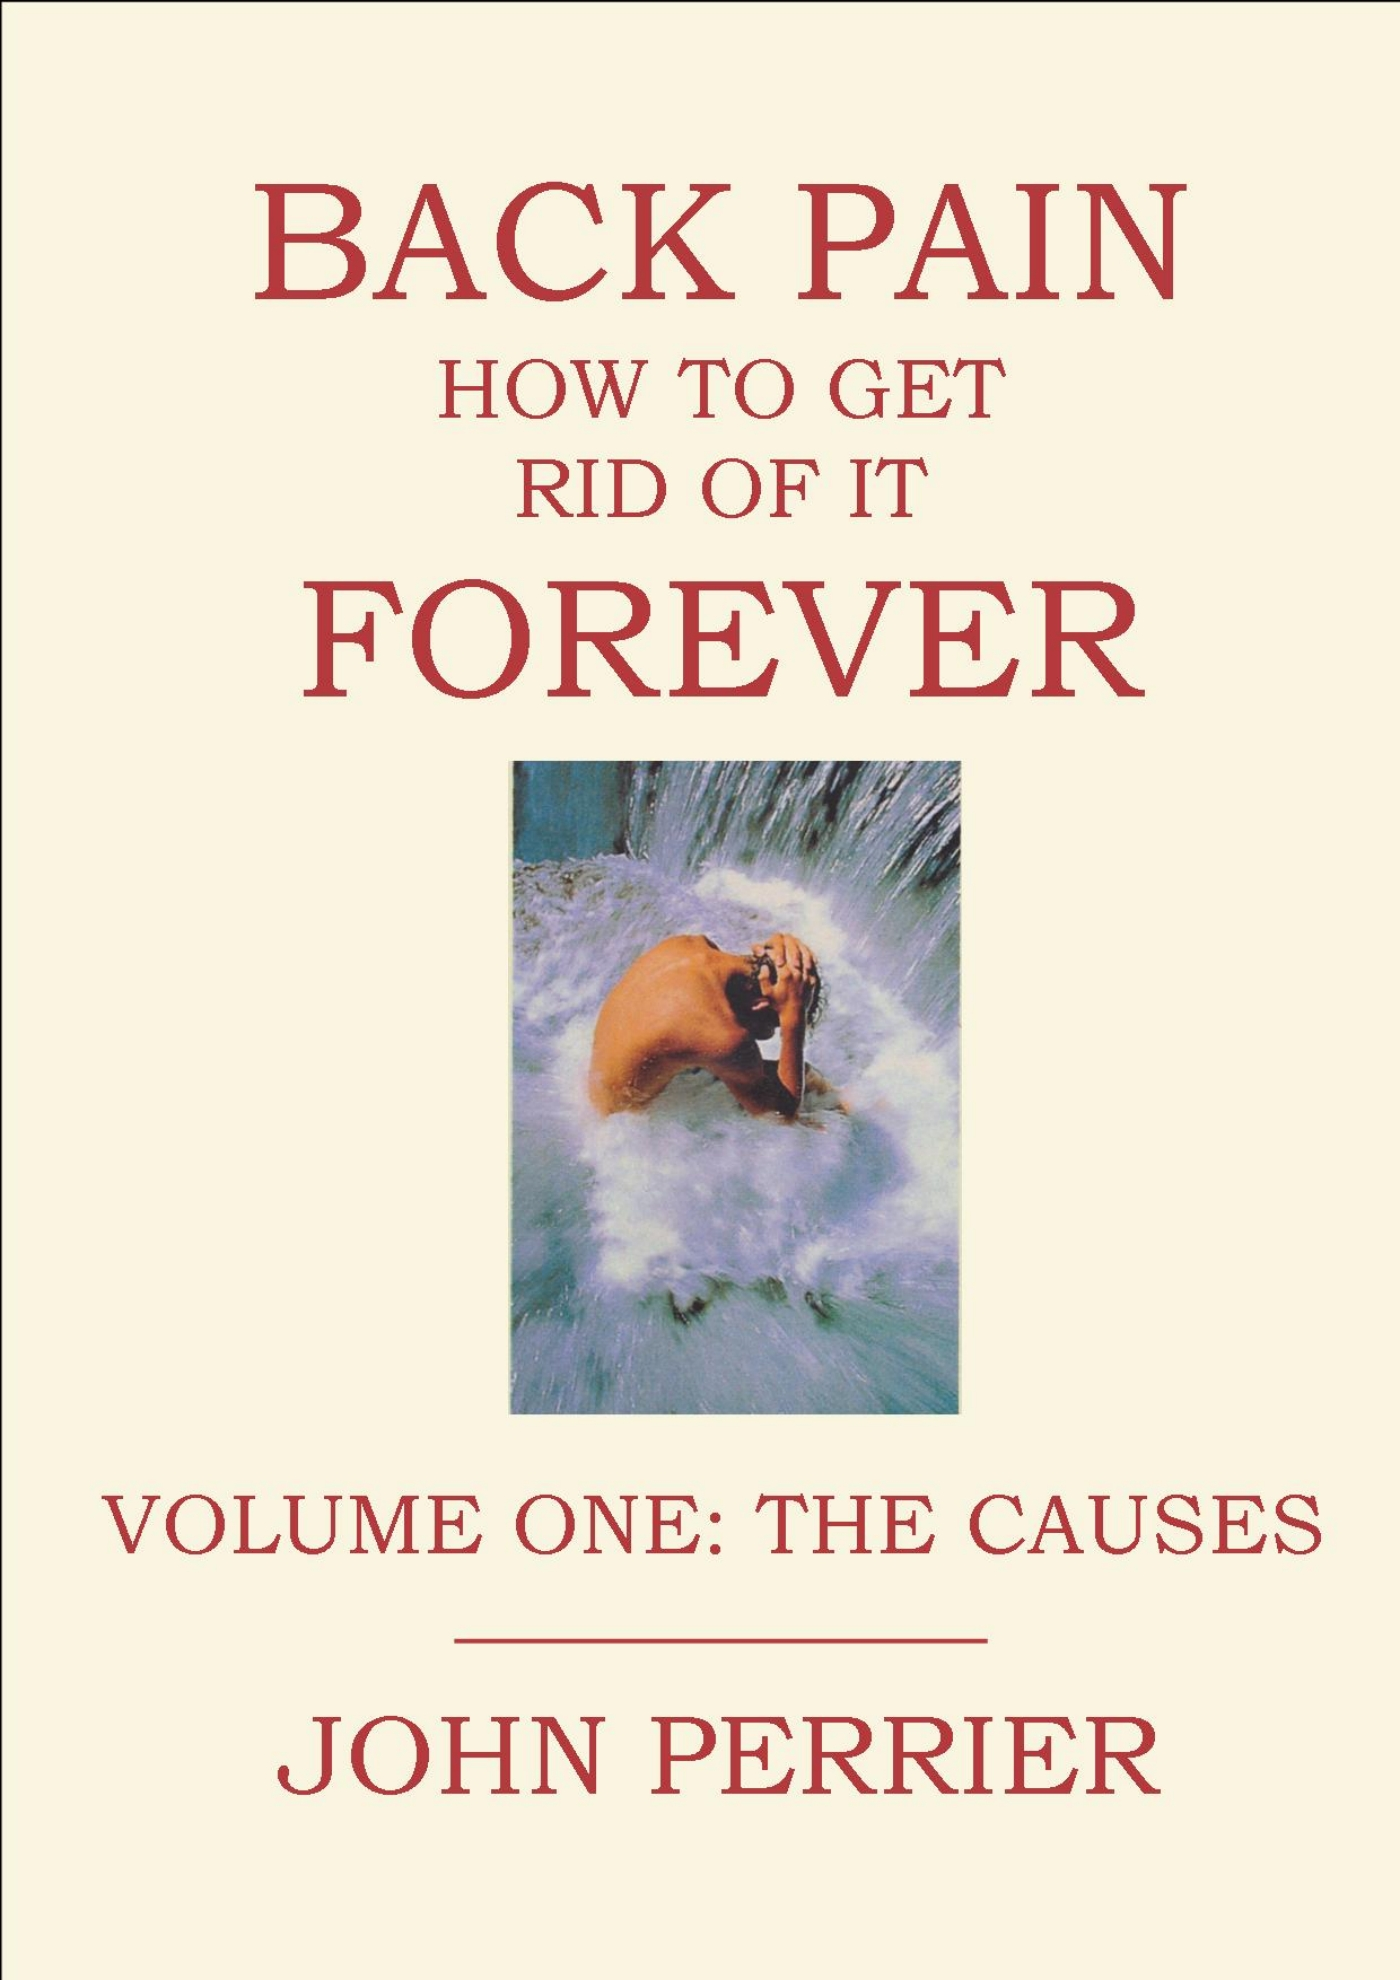 Back Pain: How to Get Rid of It Forever (Volume 1: The Causes)